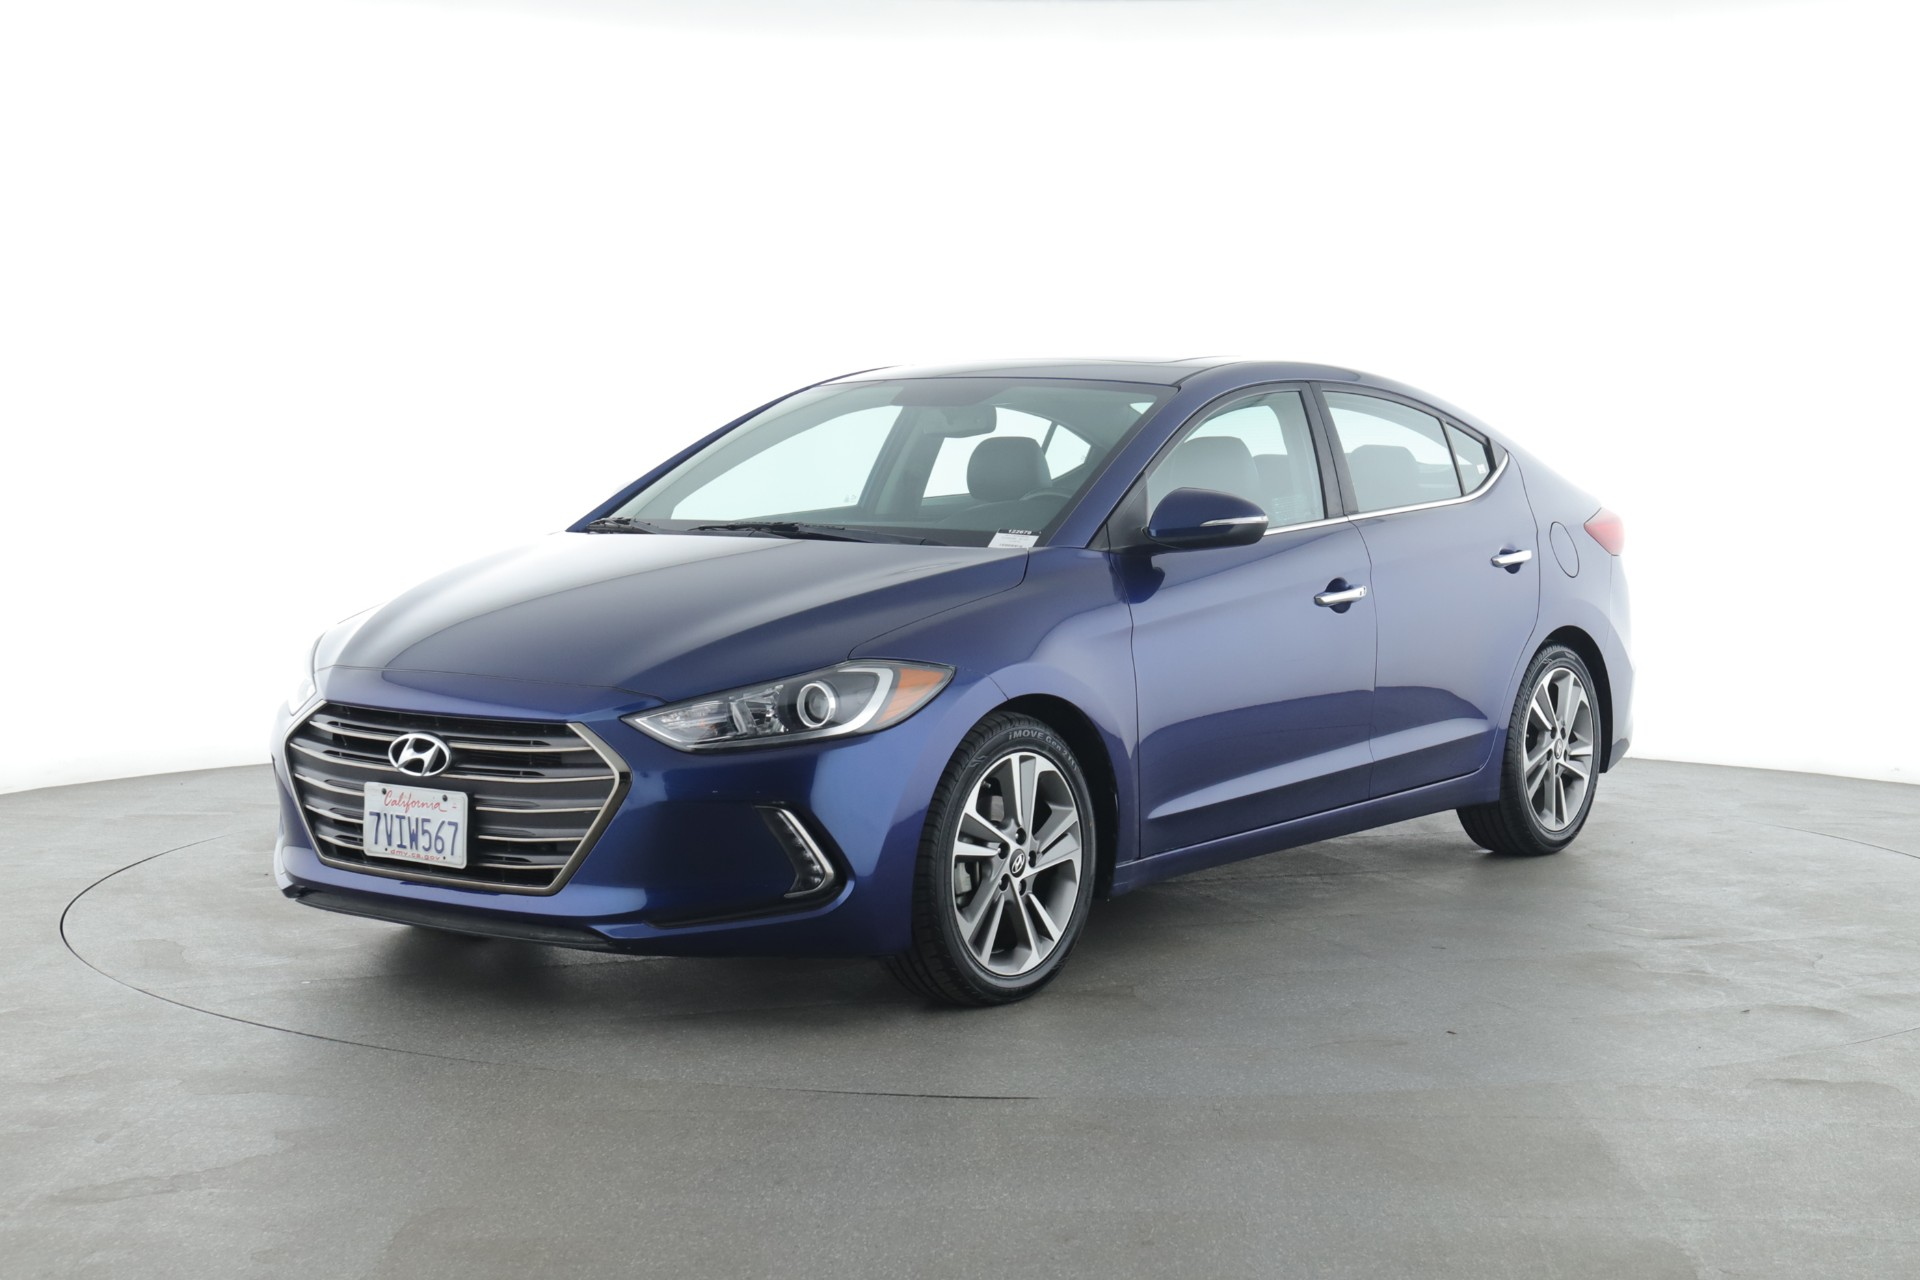 Top 9 Best Used Cars Under $20,000 For Beginners